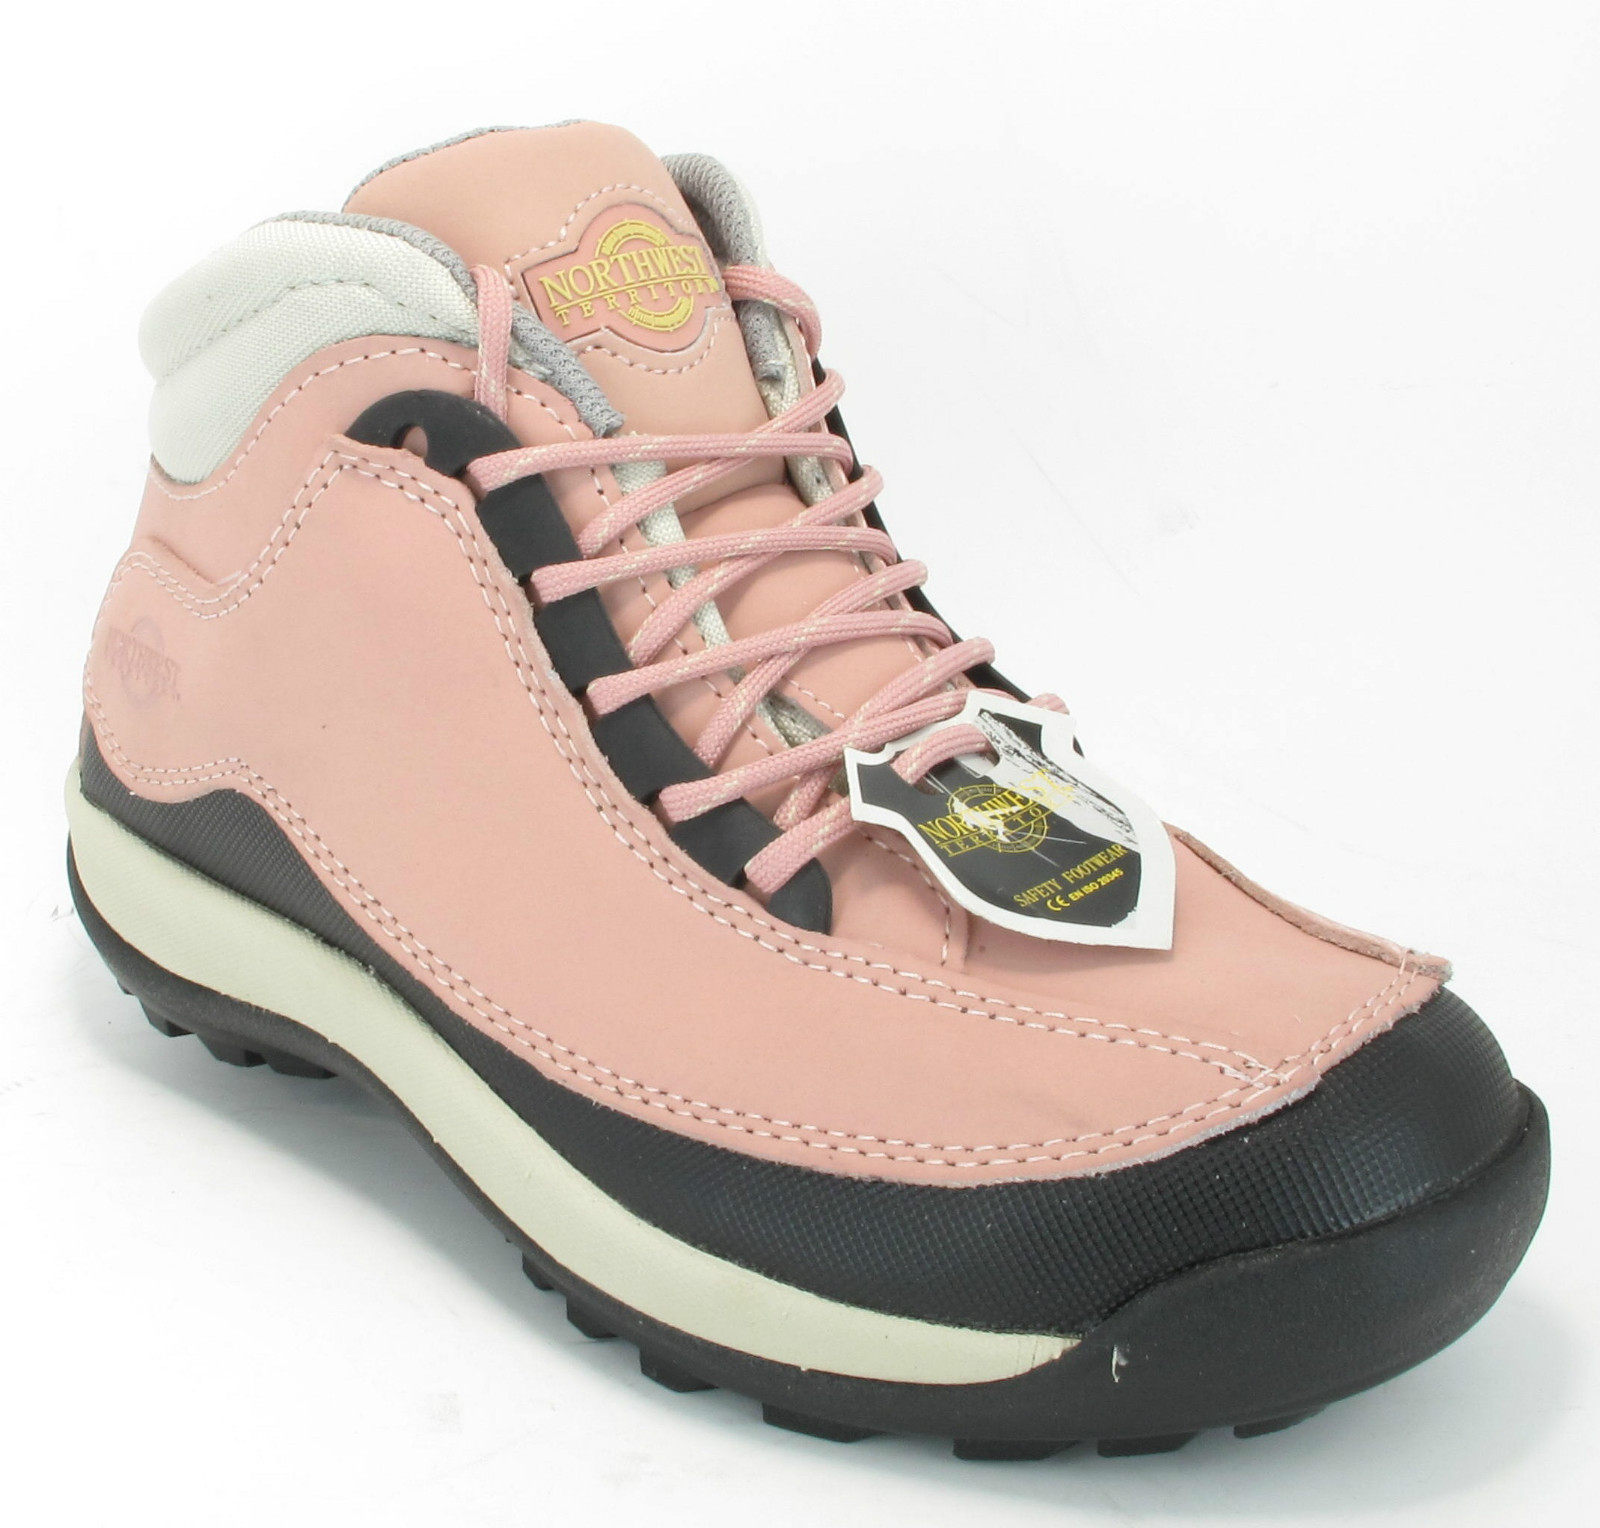 womens-LIGHT-WEIGHT-STEEL-TOE-CAP-SAFETY-WORK-BOOTS-size-4-5-6-7-8